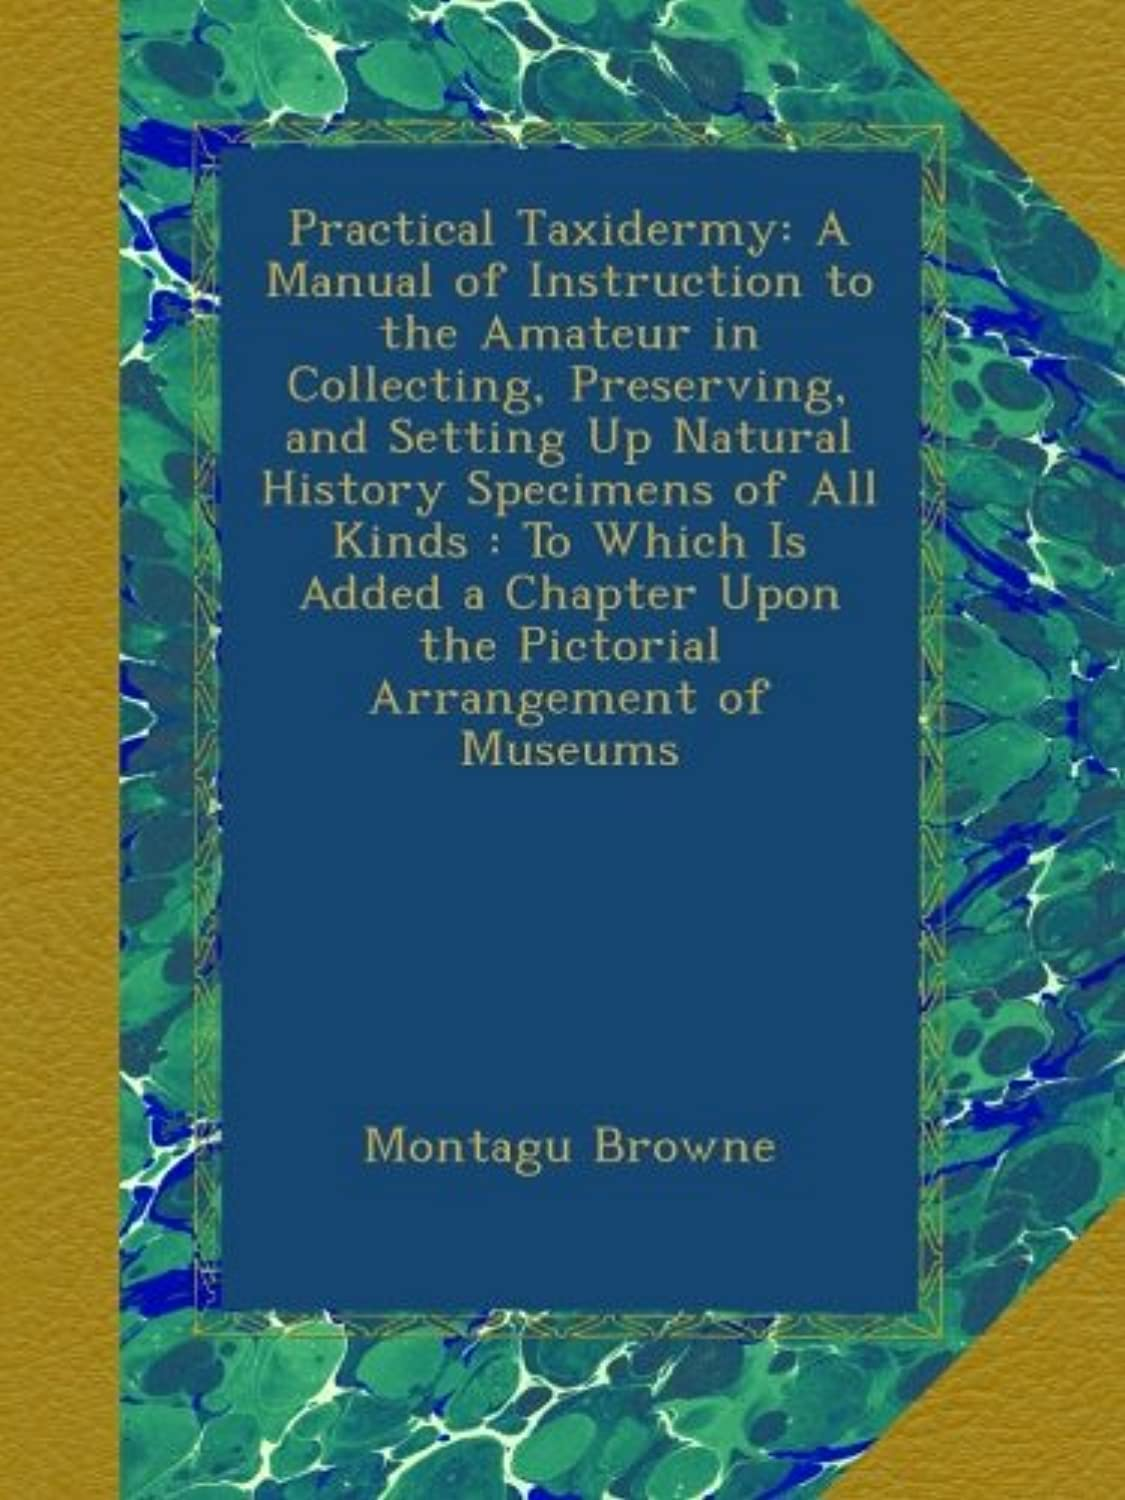 Practical Taxidermy: A Manual of Instruction to the Amateur in Collecting, Preserving, and Setting Up Natural History Specimens of All Kinds : To Which Is Added a Chapter Upon the Pictorial Arrangement of Museums